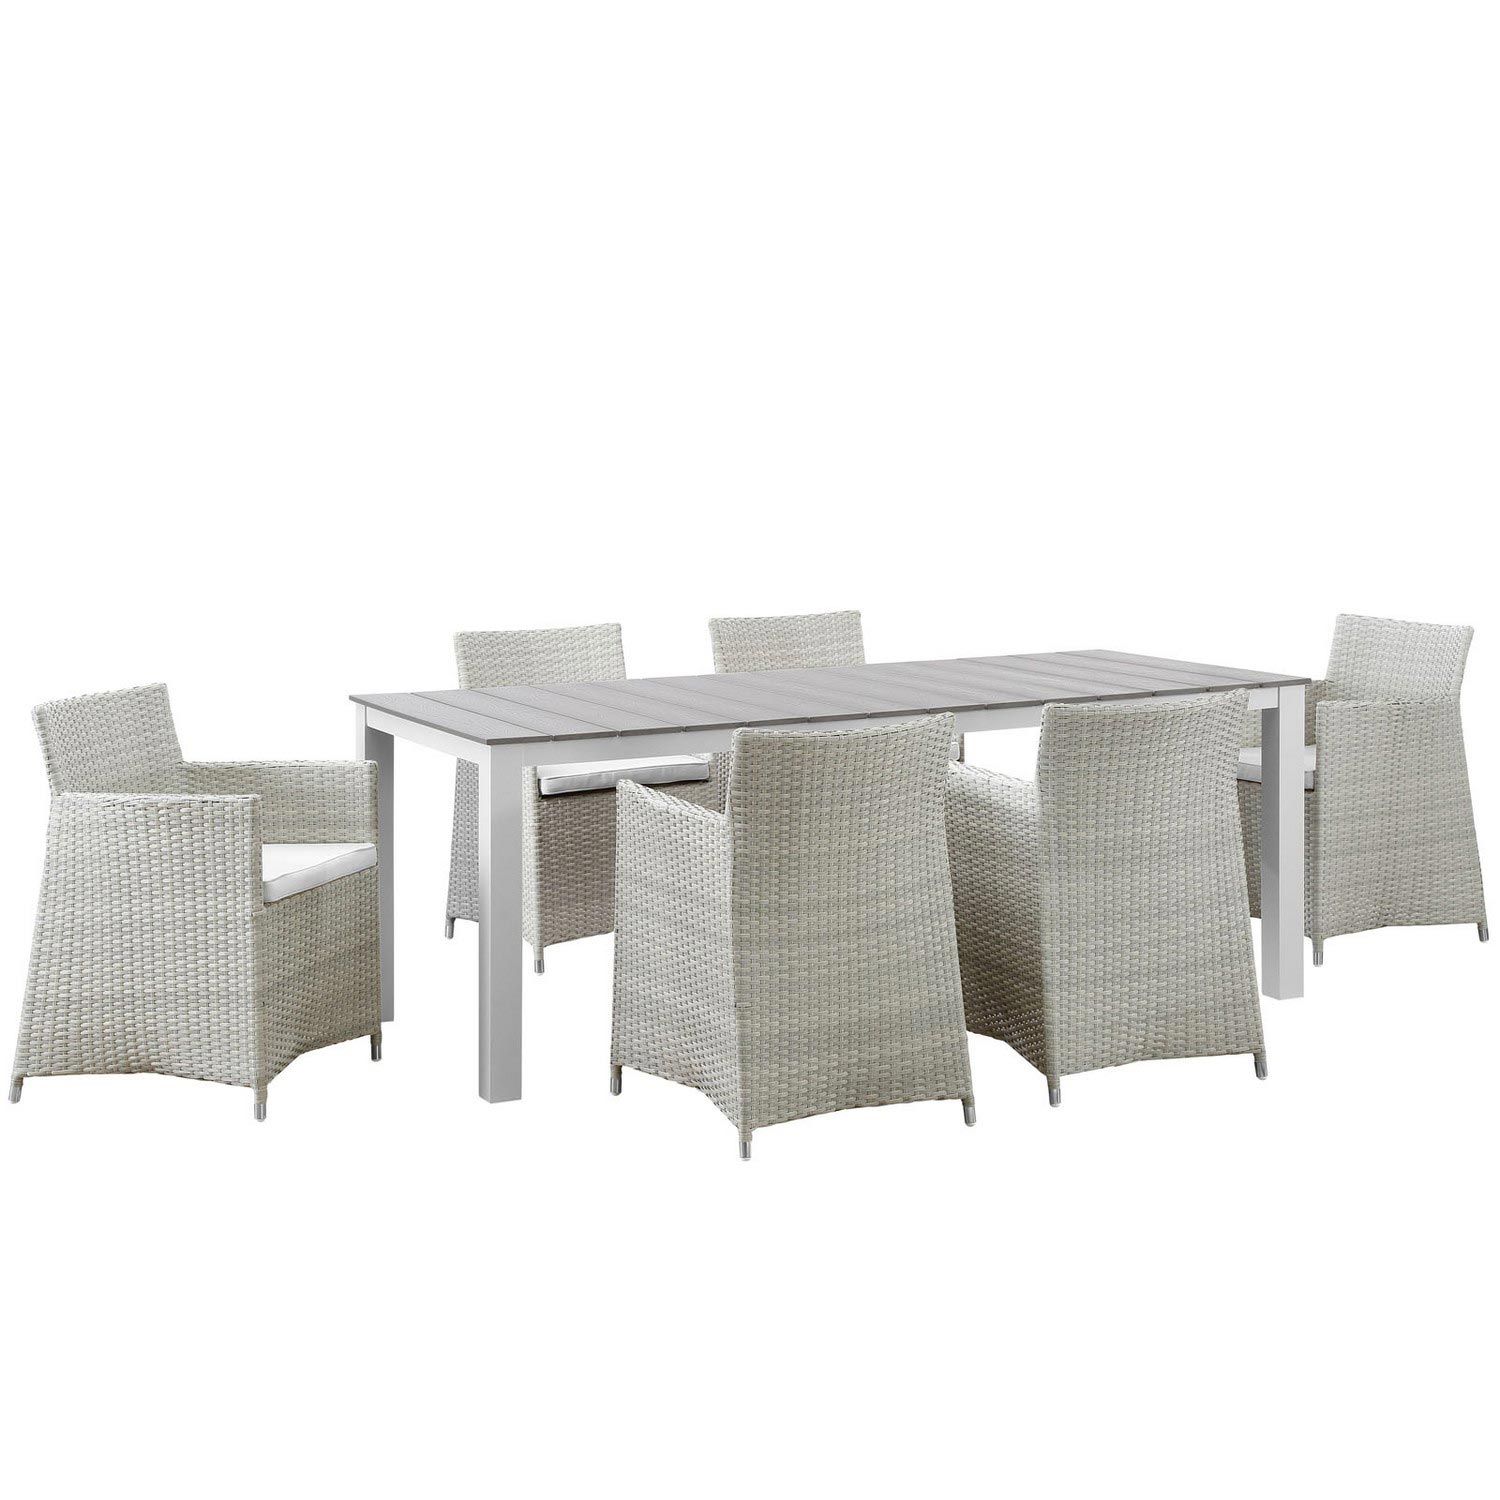 Modway Junction 7 Piece Outdoor Patio Dining Set - Gray/White